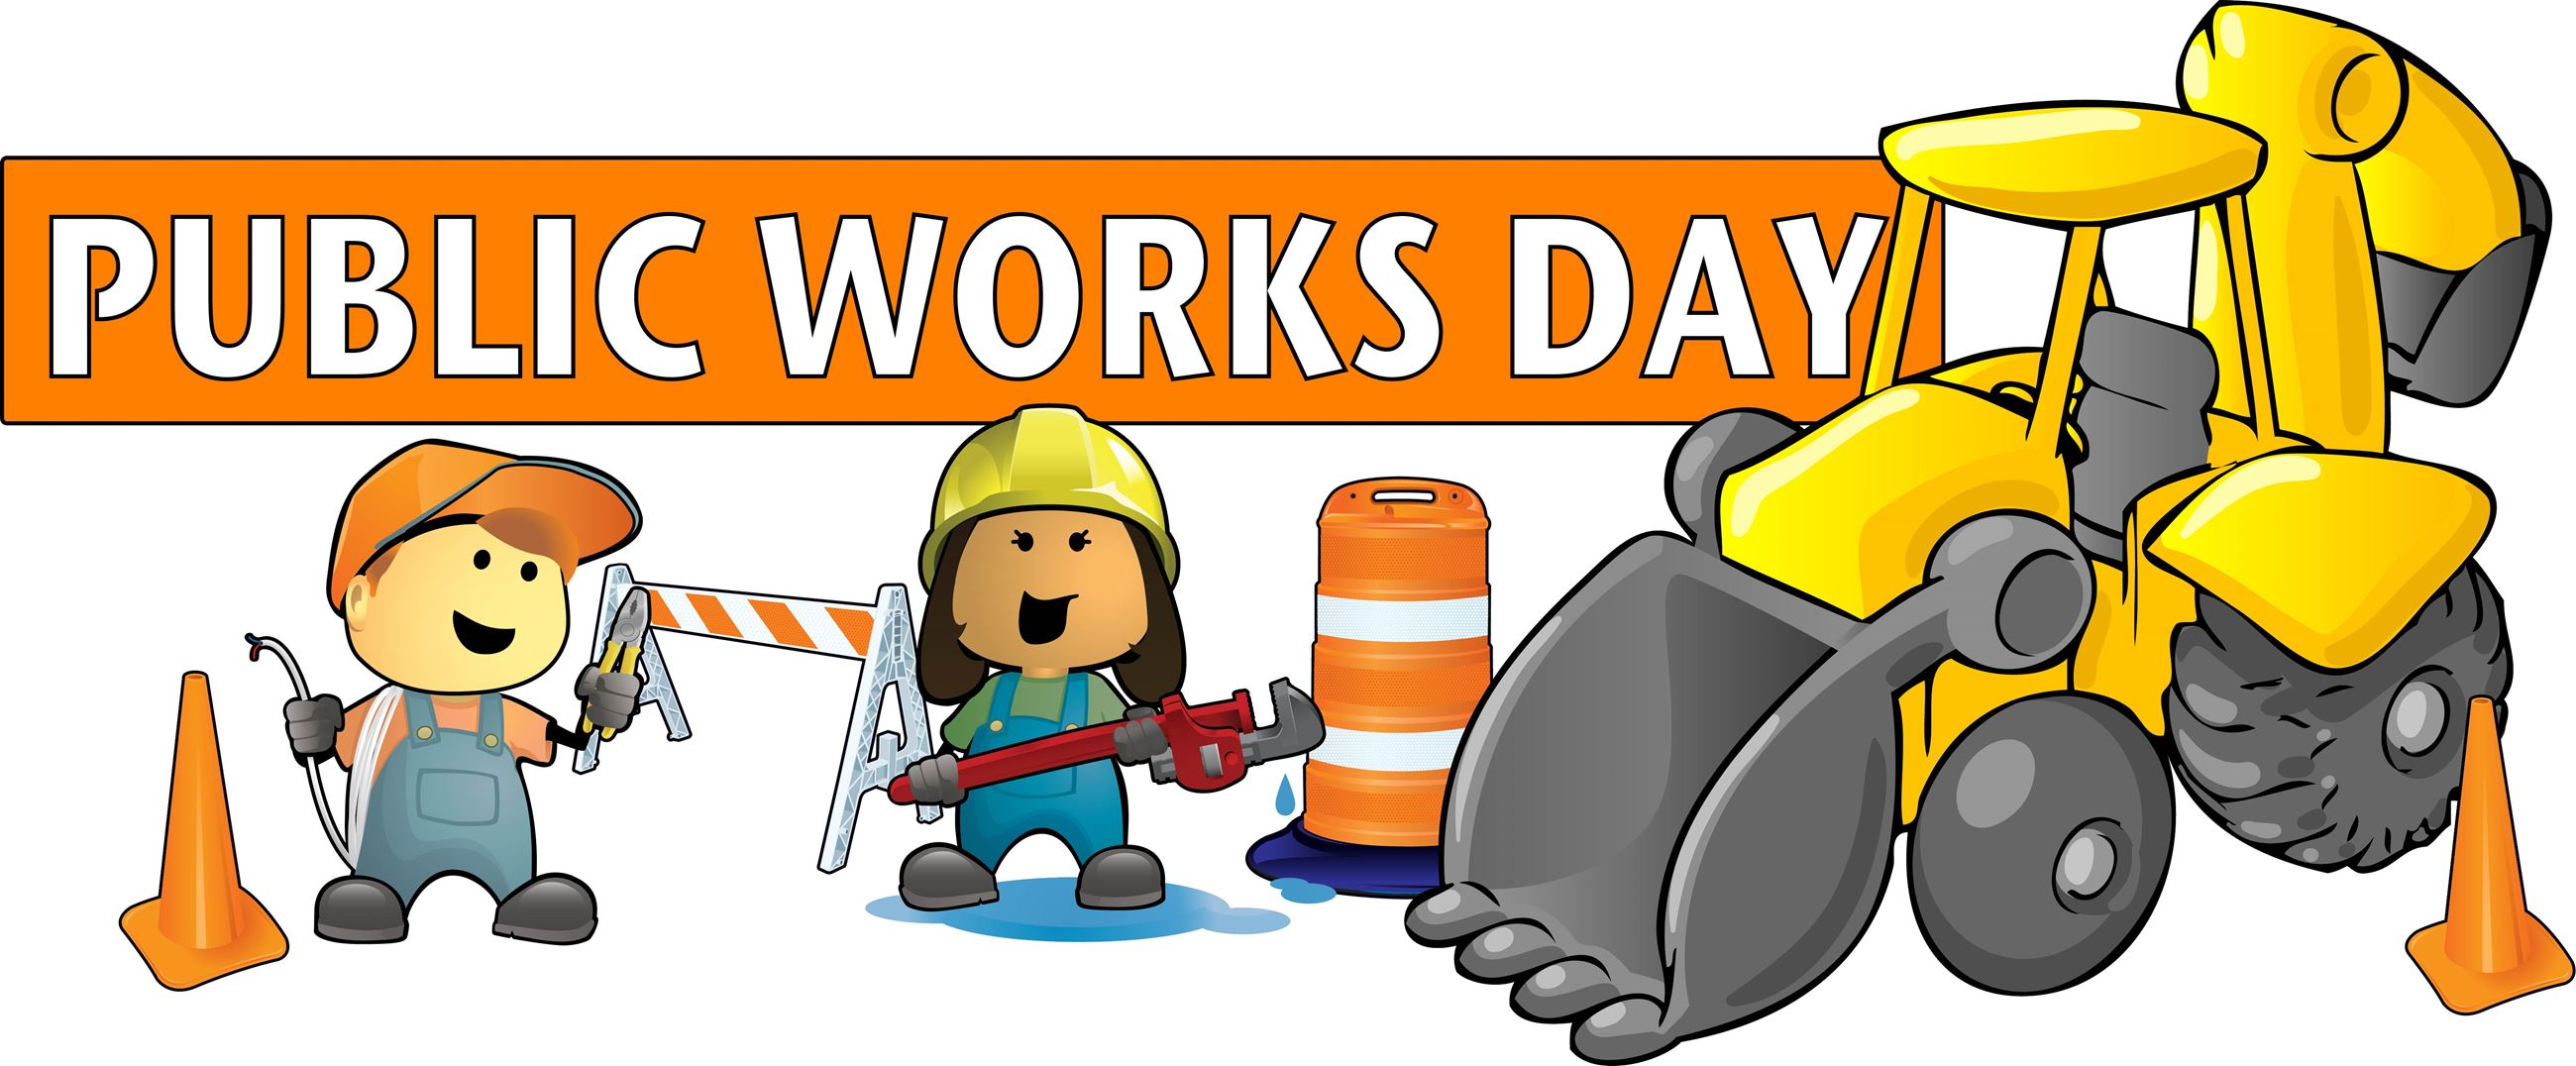 Come Join Us for Public Works Day